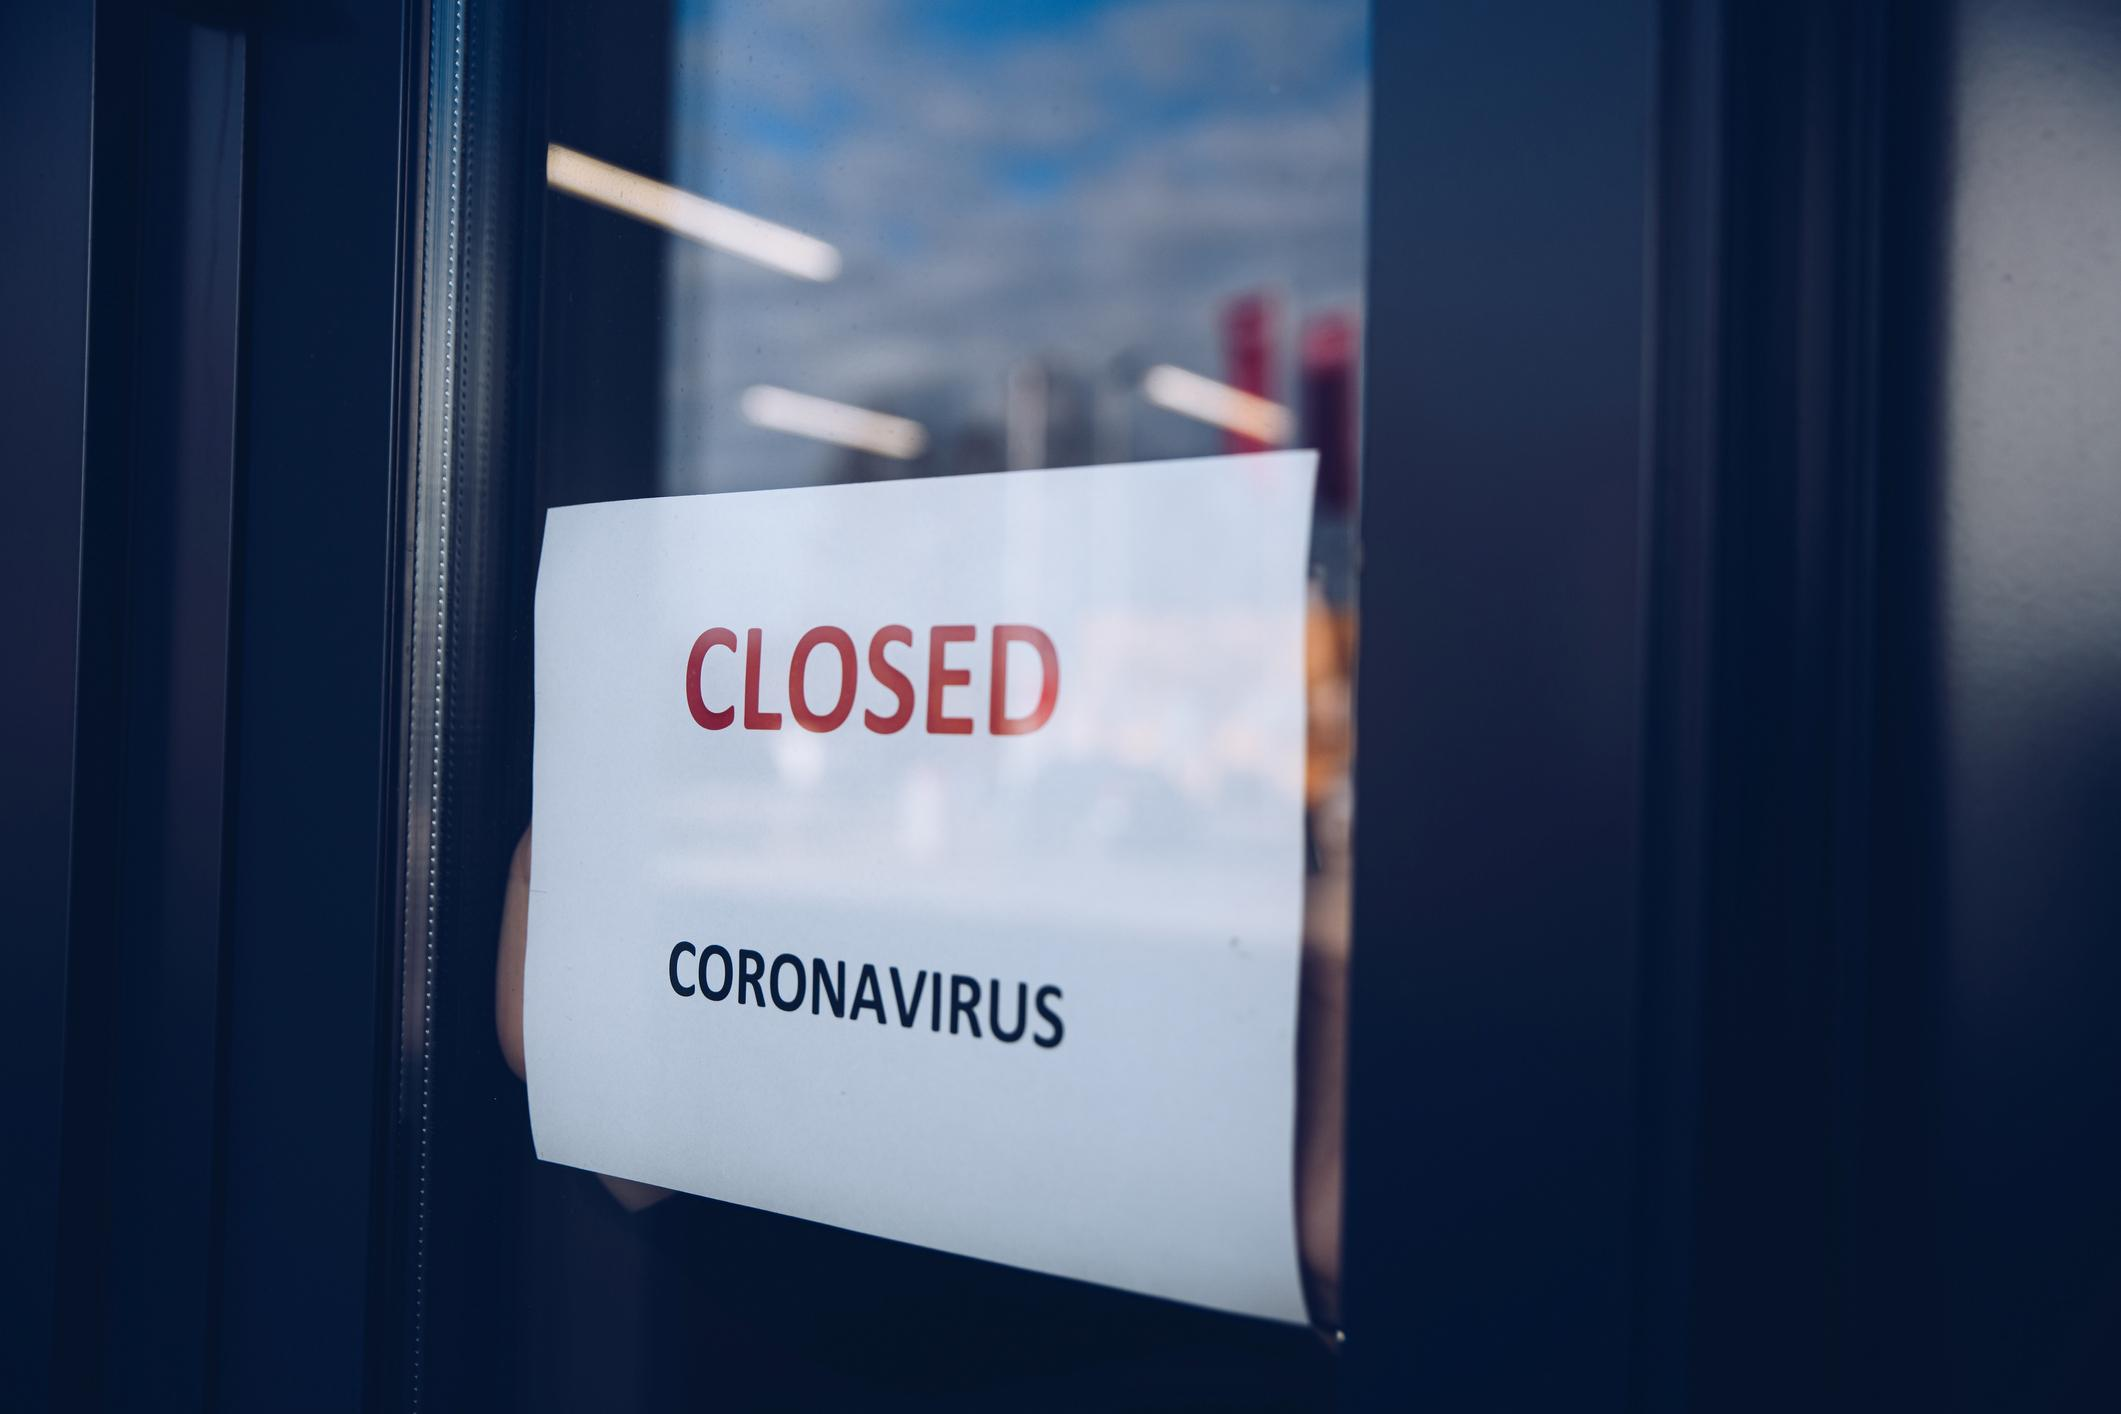 AM800-News-Closed-Coronavirus-COVID-19